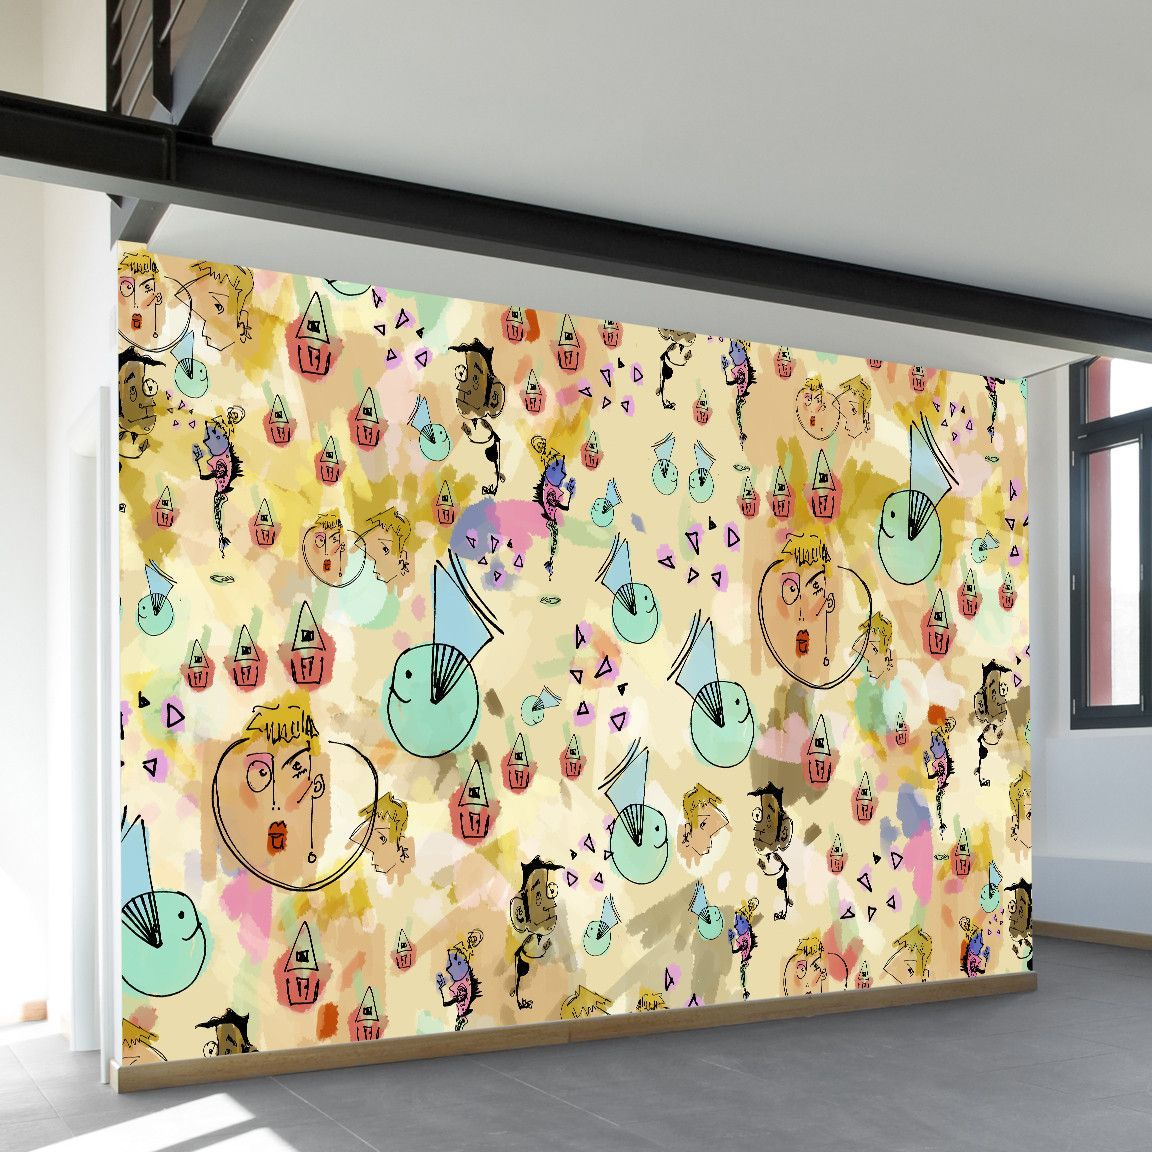 Confetti Peeps Wall Mural | Wall murals and Products